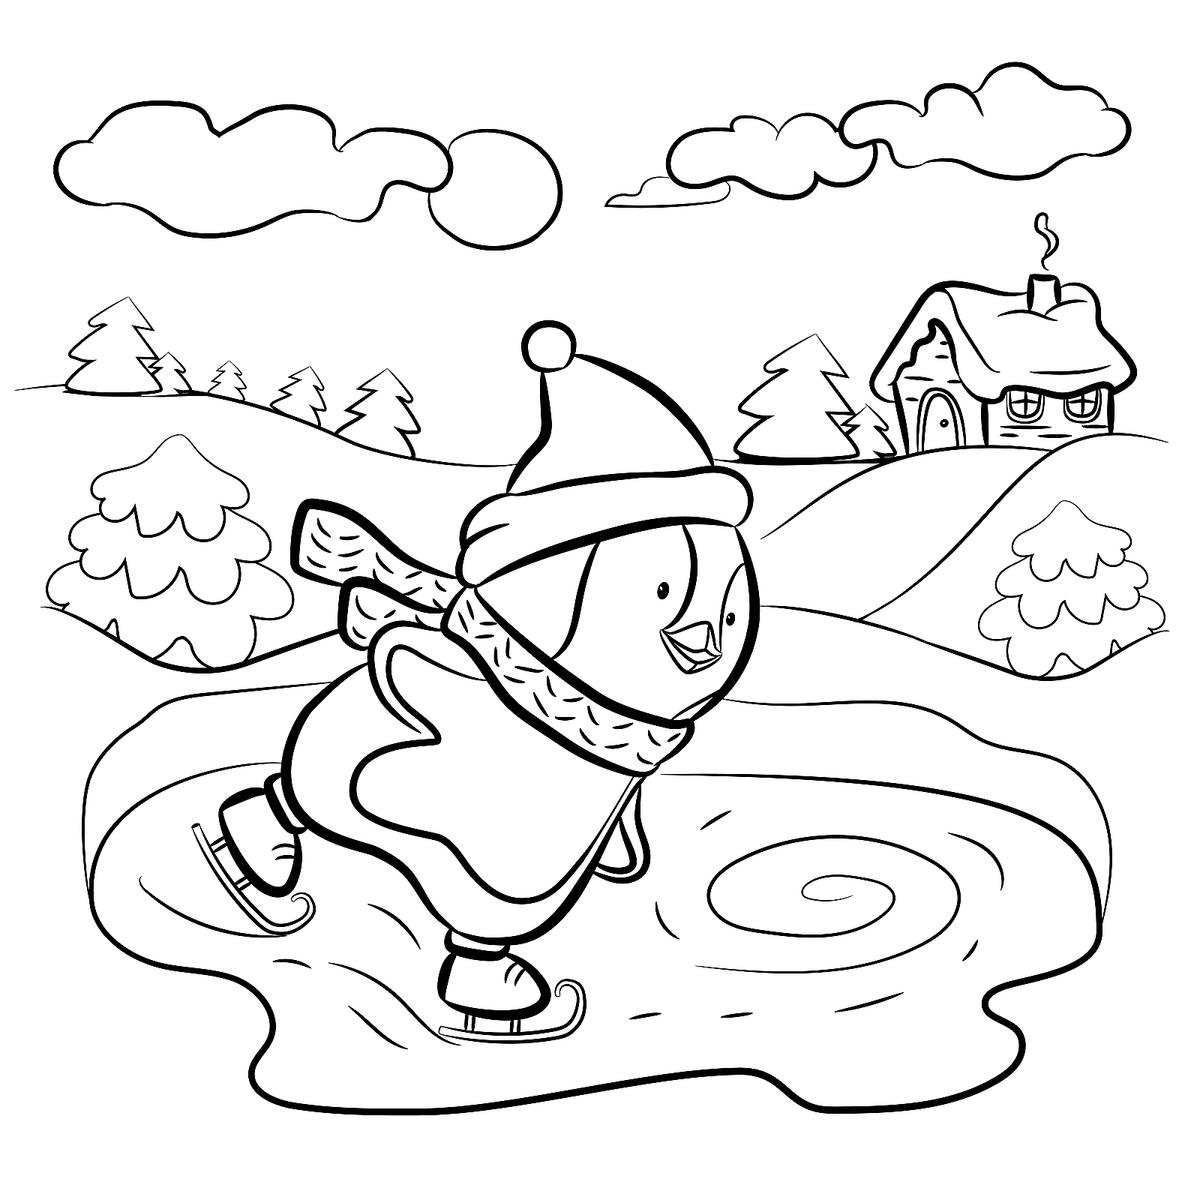 winter coloring pages disney - winter puzzle coloring pages printable winter themed